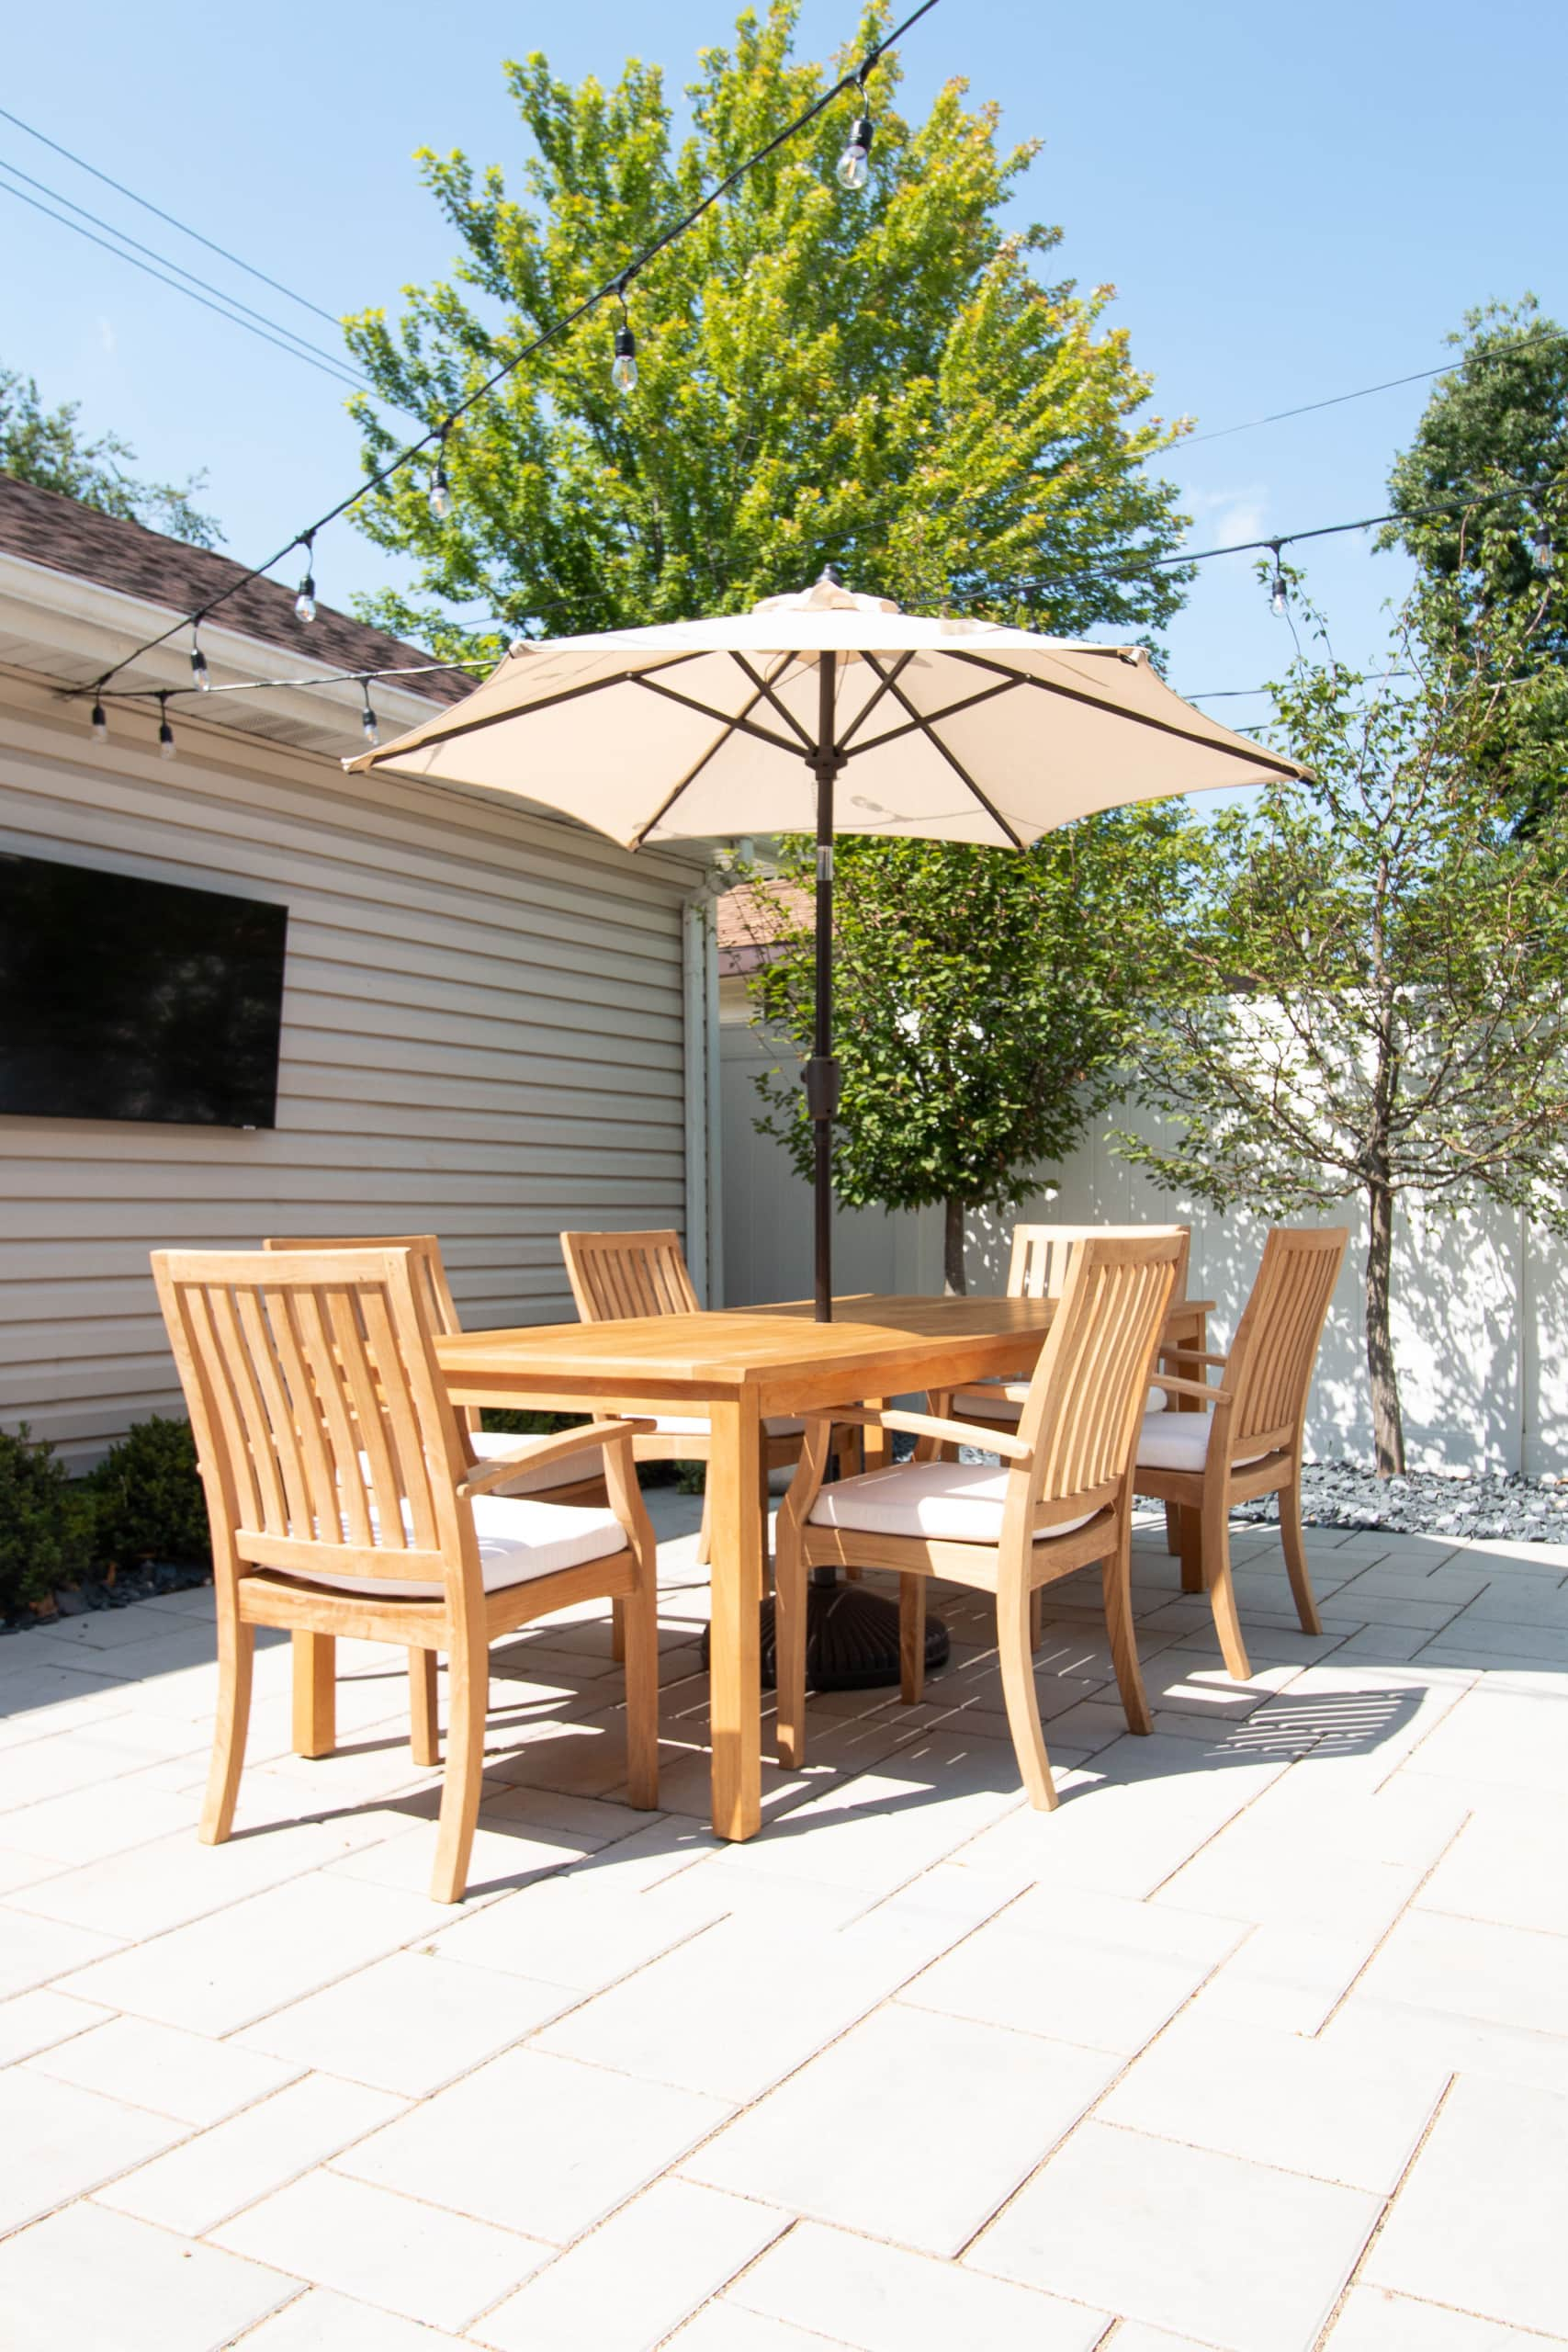 Backyard renovation lessons. What we learned from our 4-month project